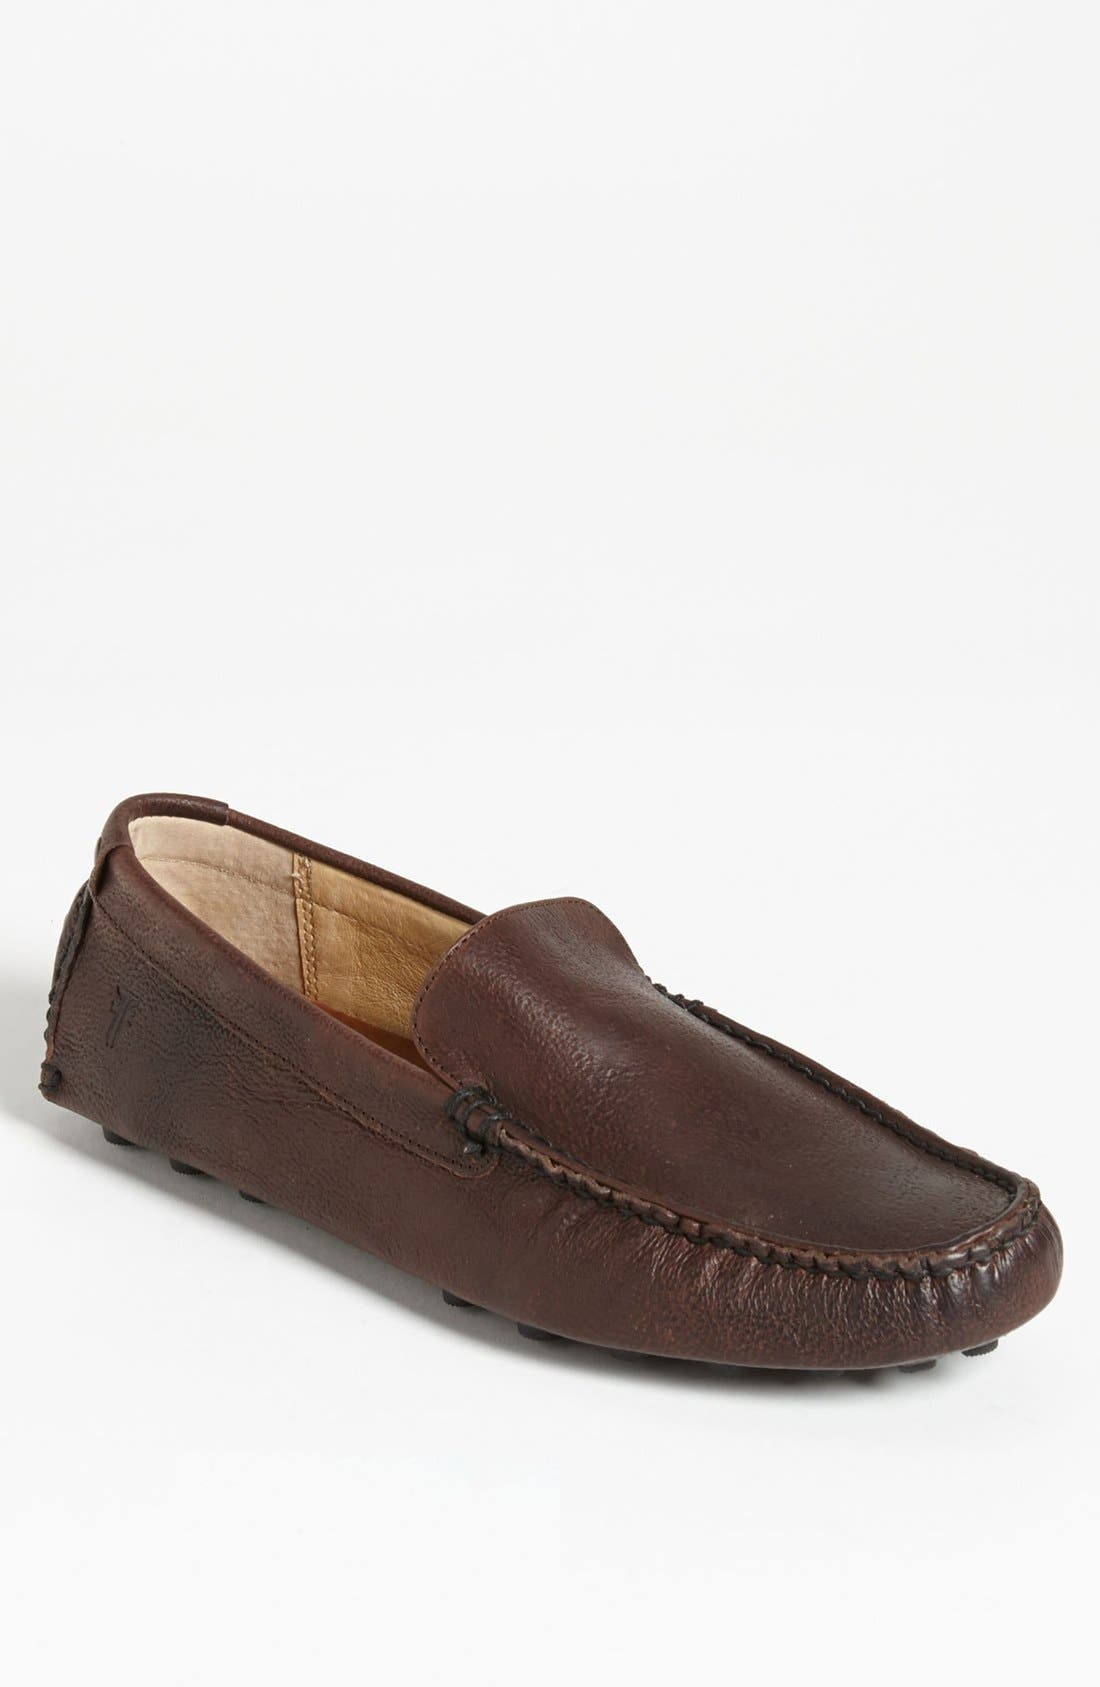 Alternate Image 1 Selected - Frye 'Russell' Driving Shoe